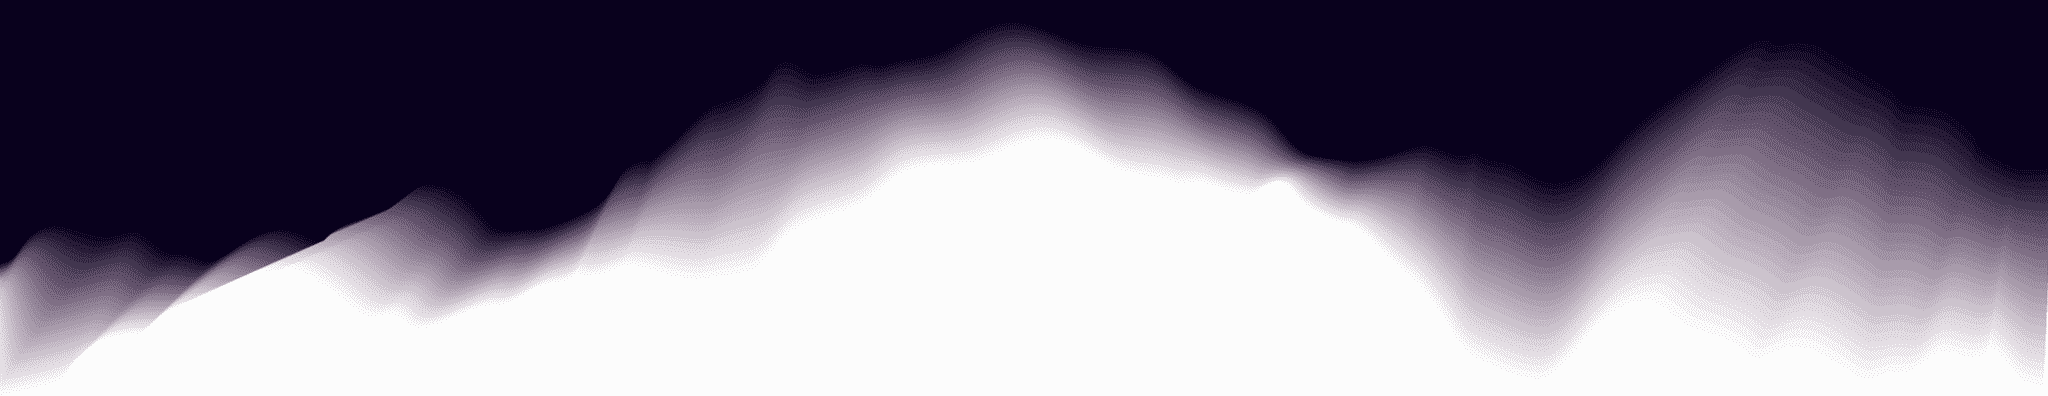 https://www.templumdianae.com/wp-content/uploads/2019/11/dark_purple_bottom_divider.png